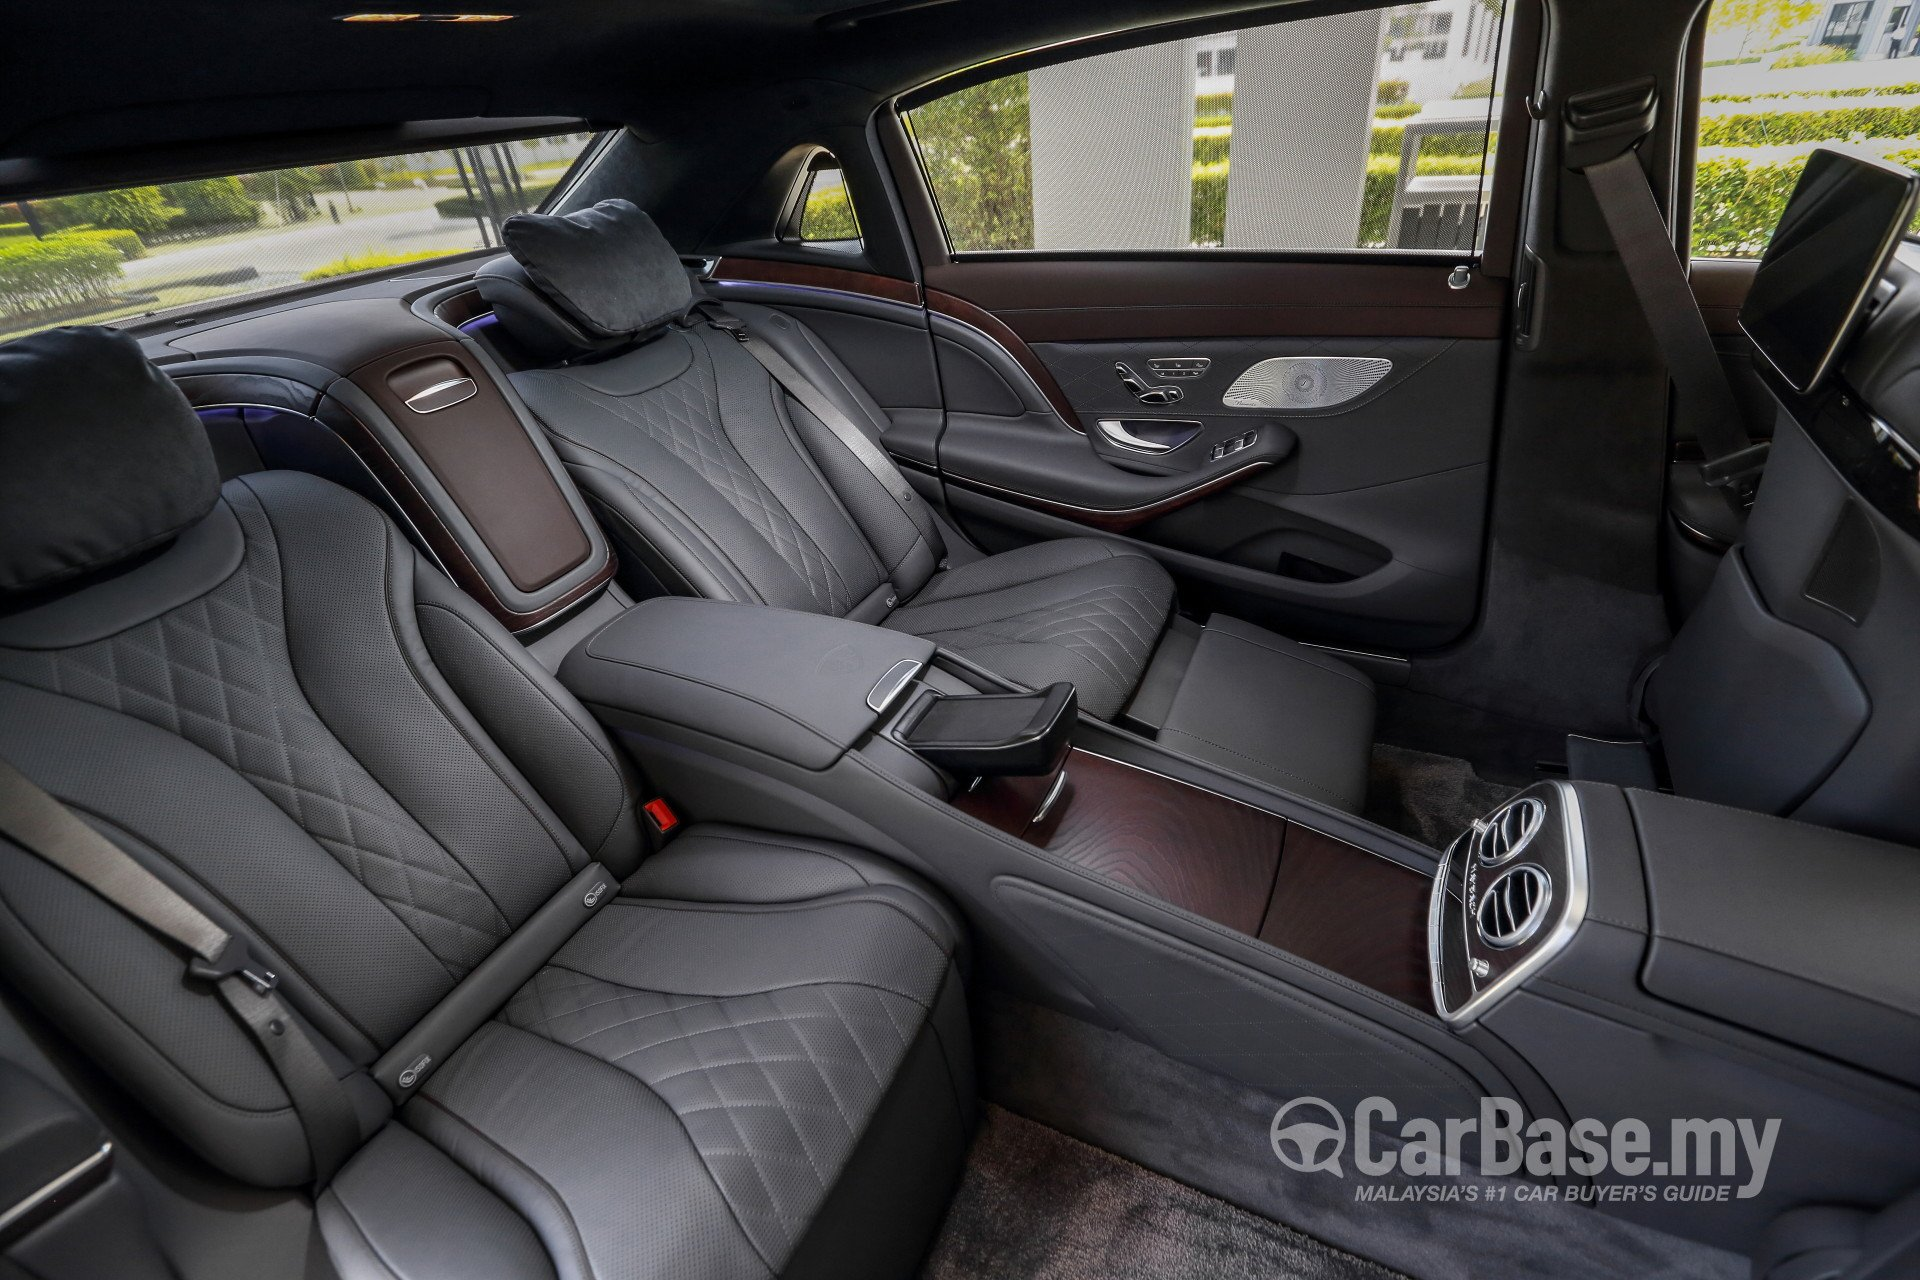 mercedes-benz maybach s-class x222 facelift (2018) interior image